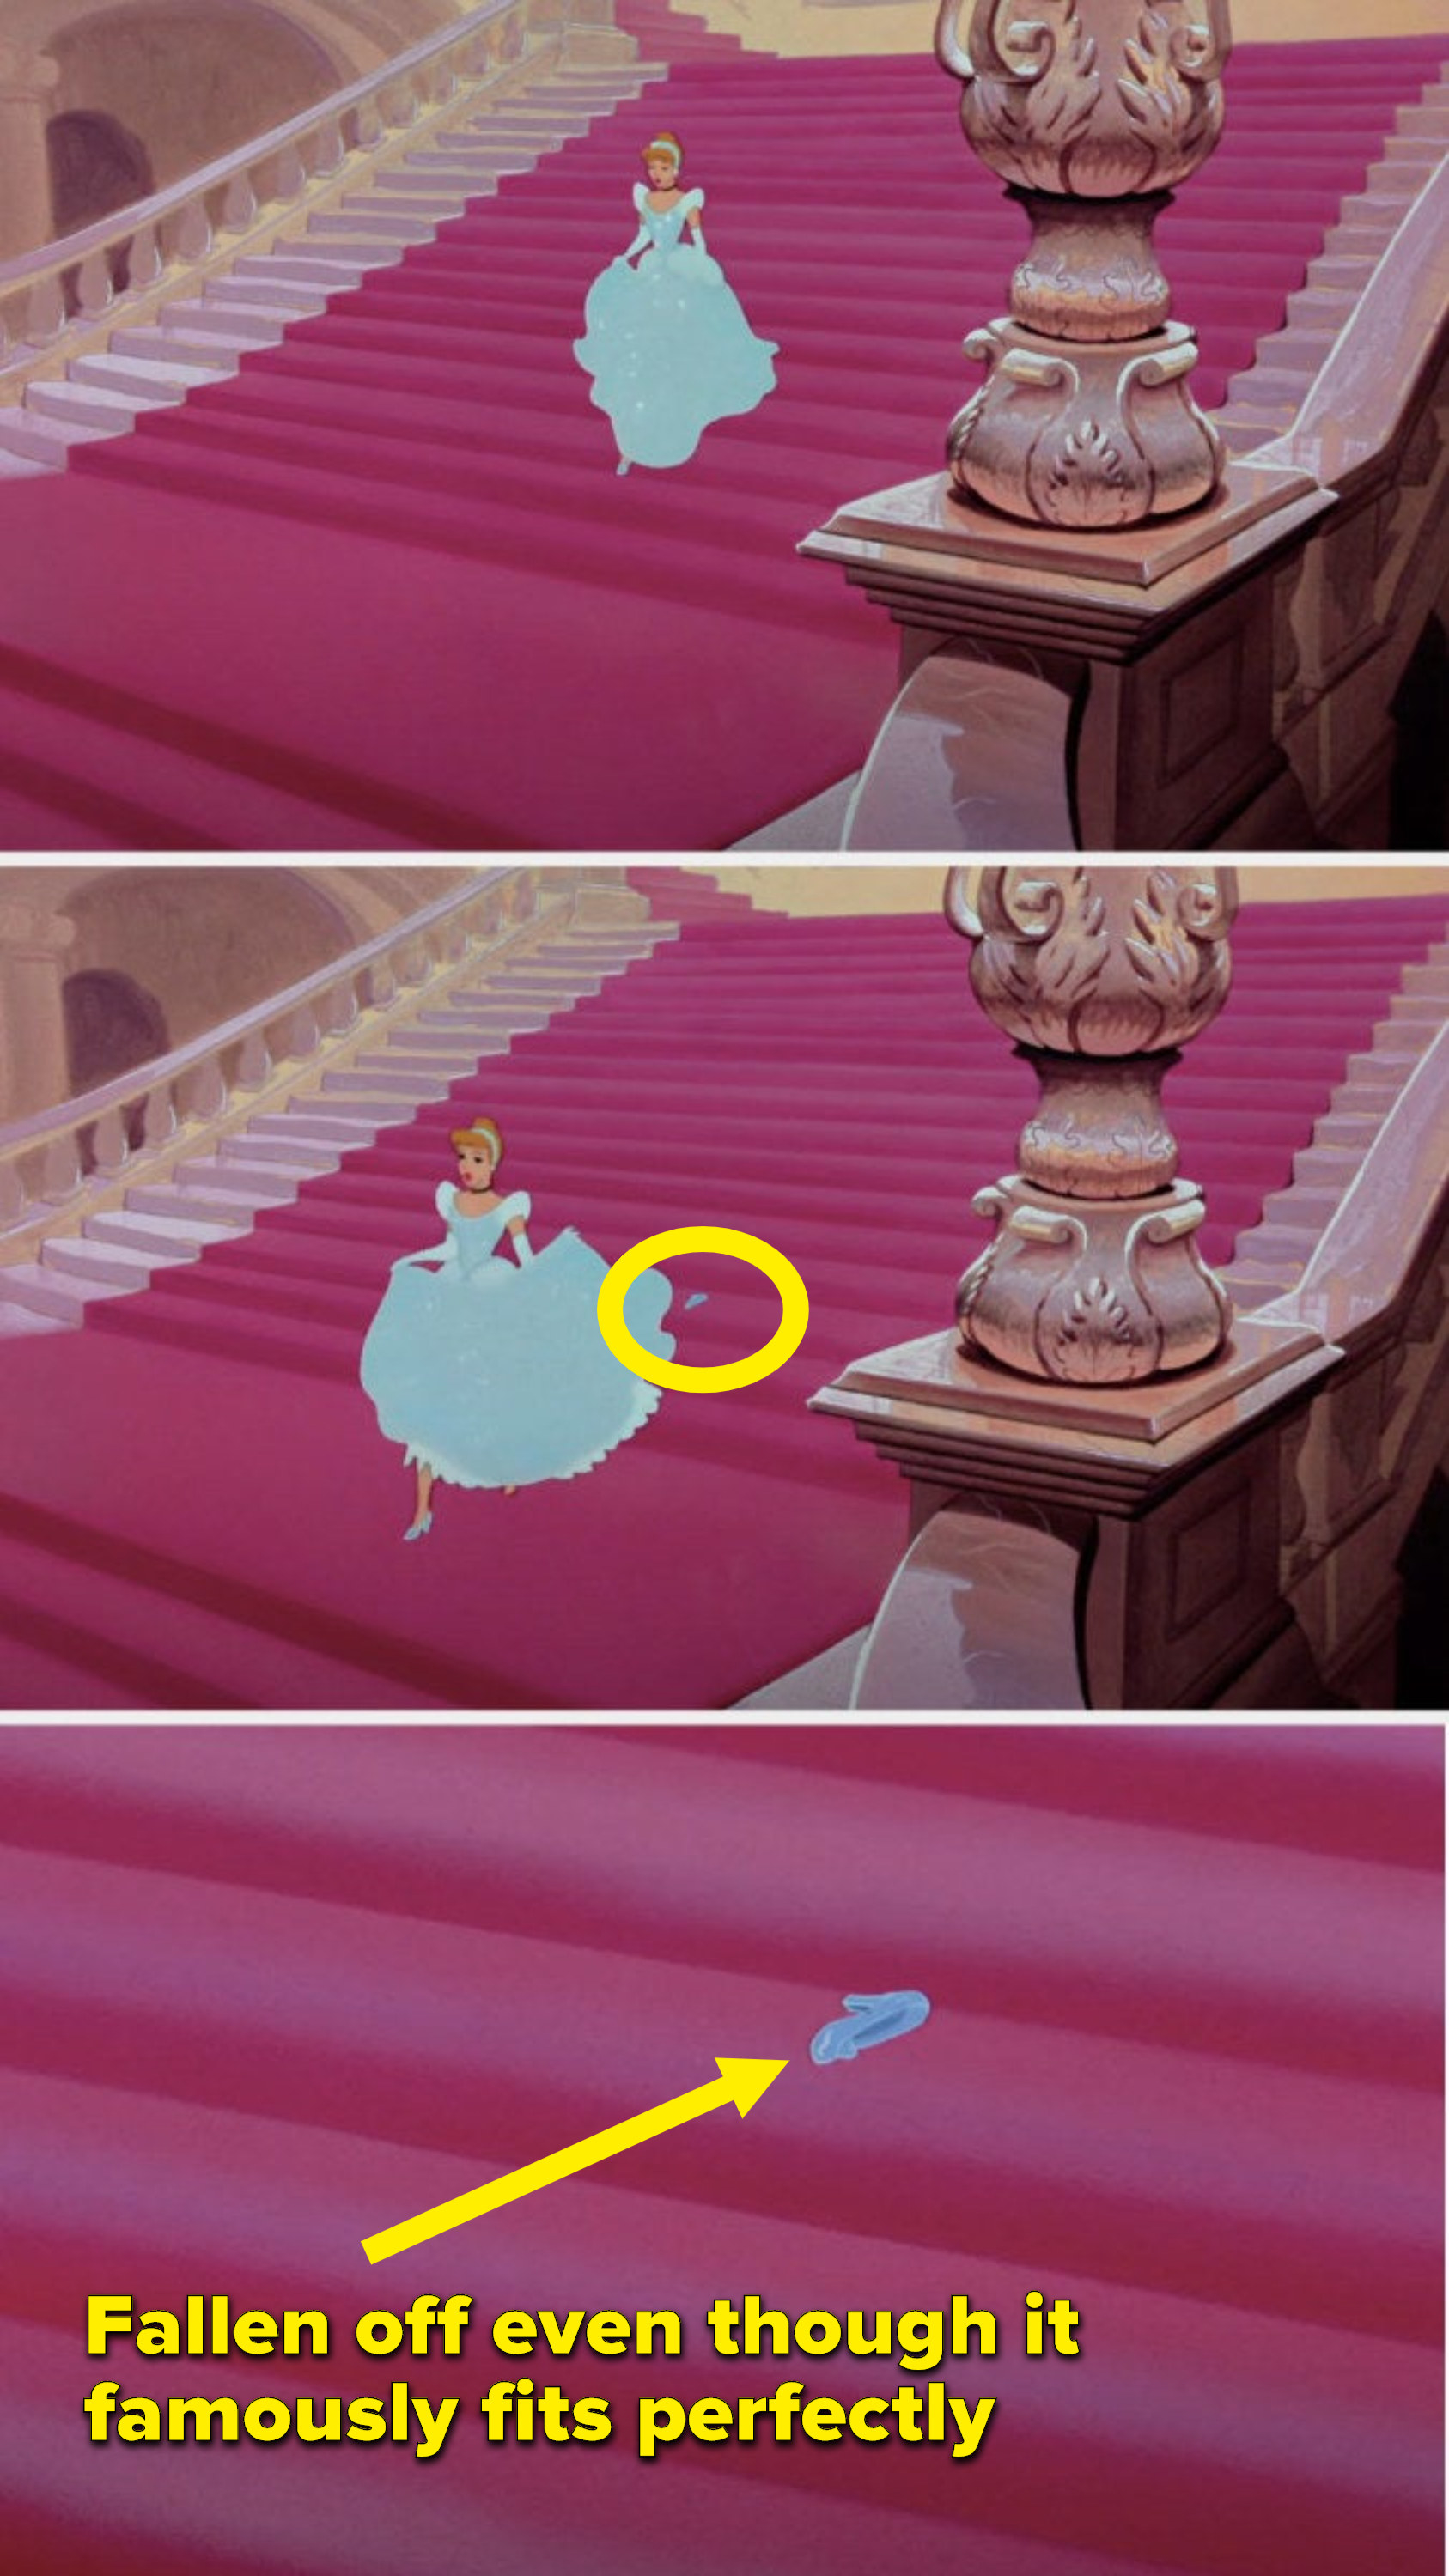 Cinderella is running down the stairs and her slipper falls off even though it famously fits perfectly